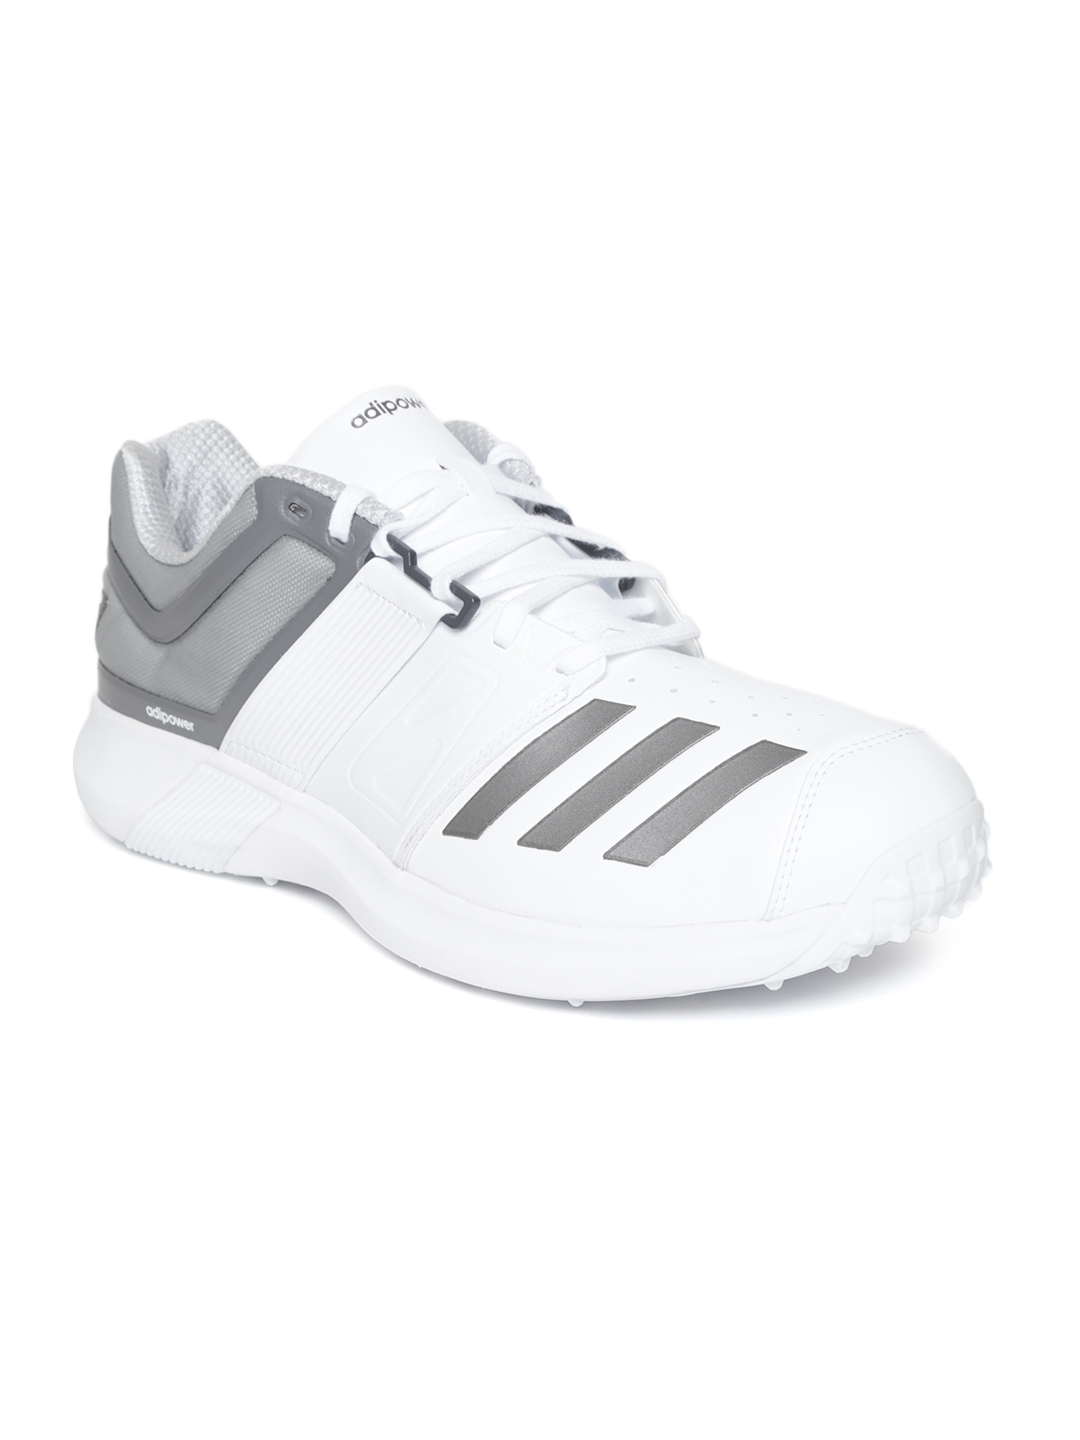 Buy ADIDAS Men White   Grey Adipower Vector Cricket Shoes - Sports ... ac5f0a651